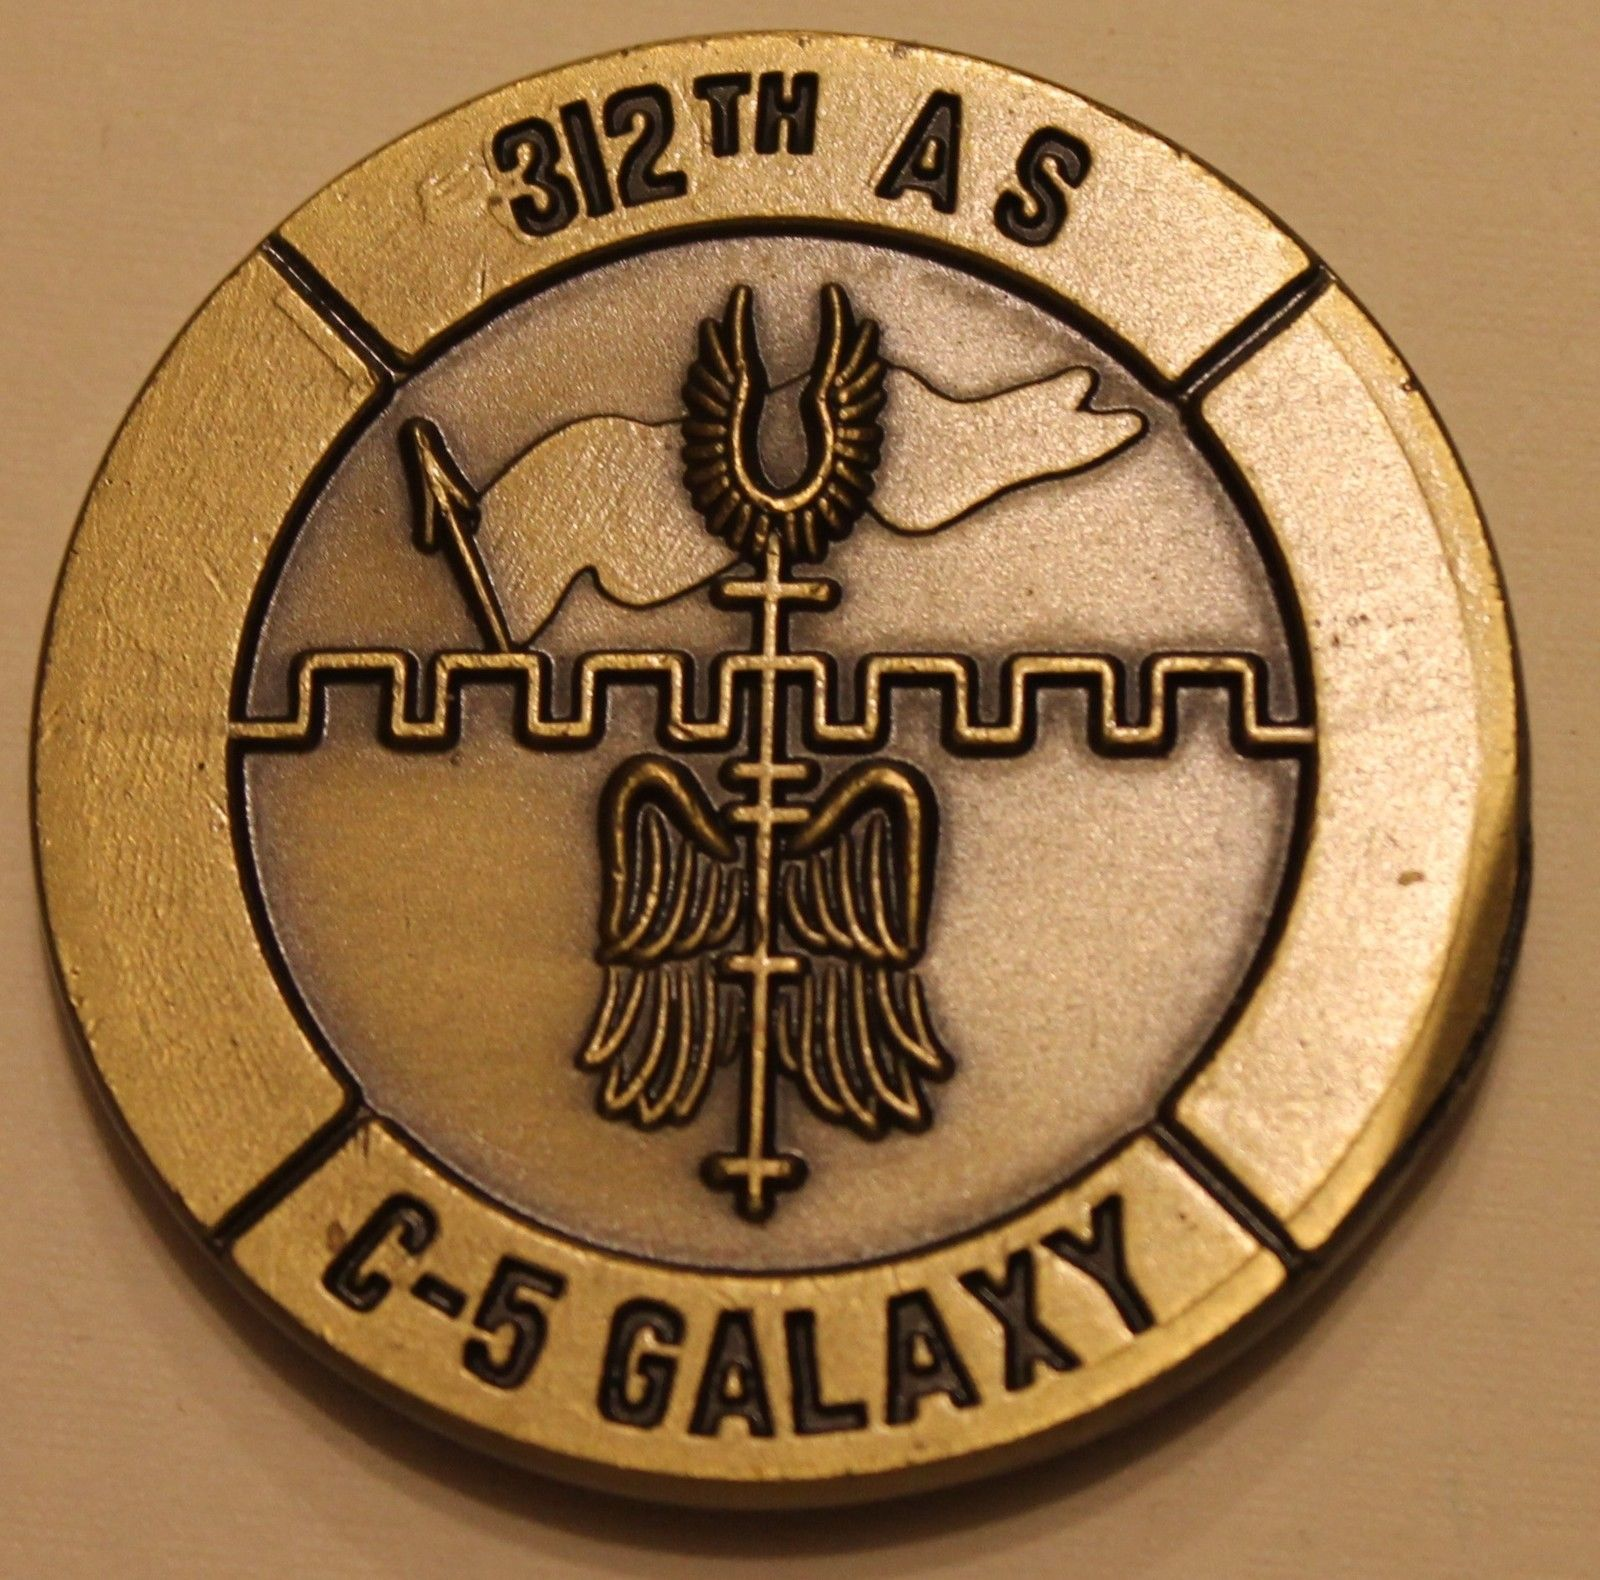 312 MAS challenge coin front.jpg